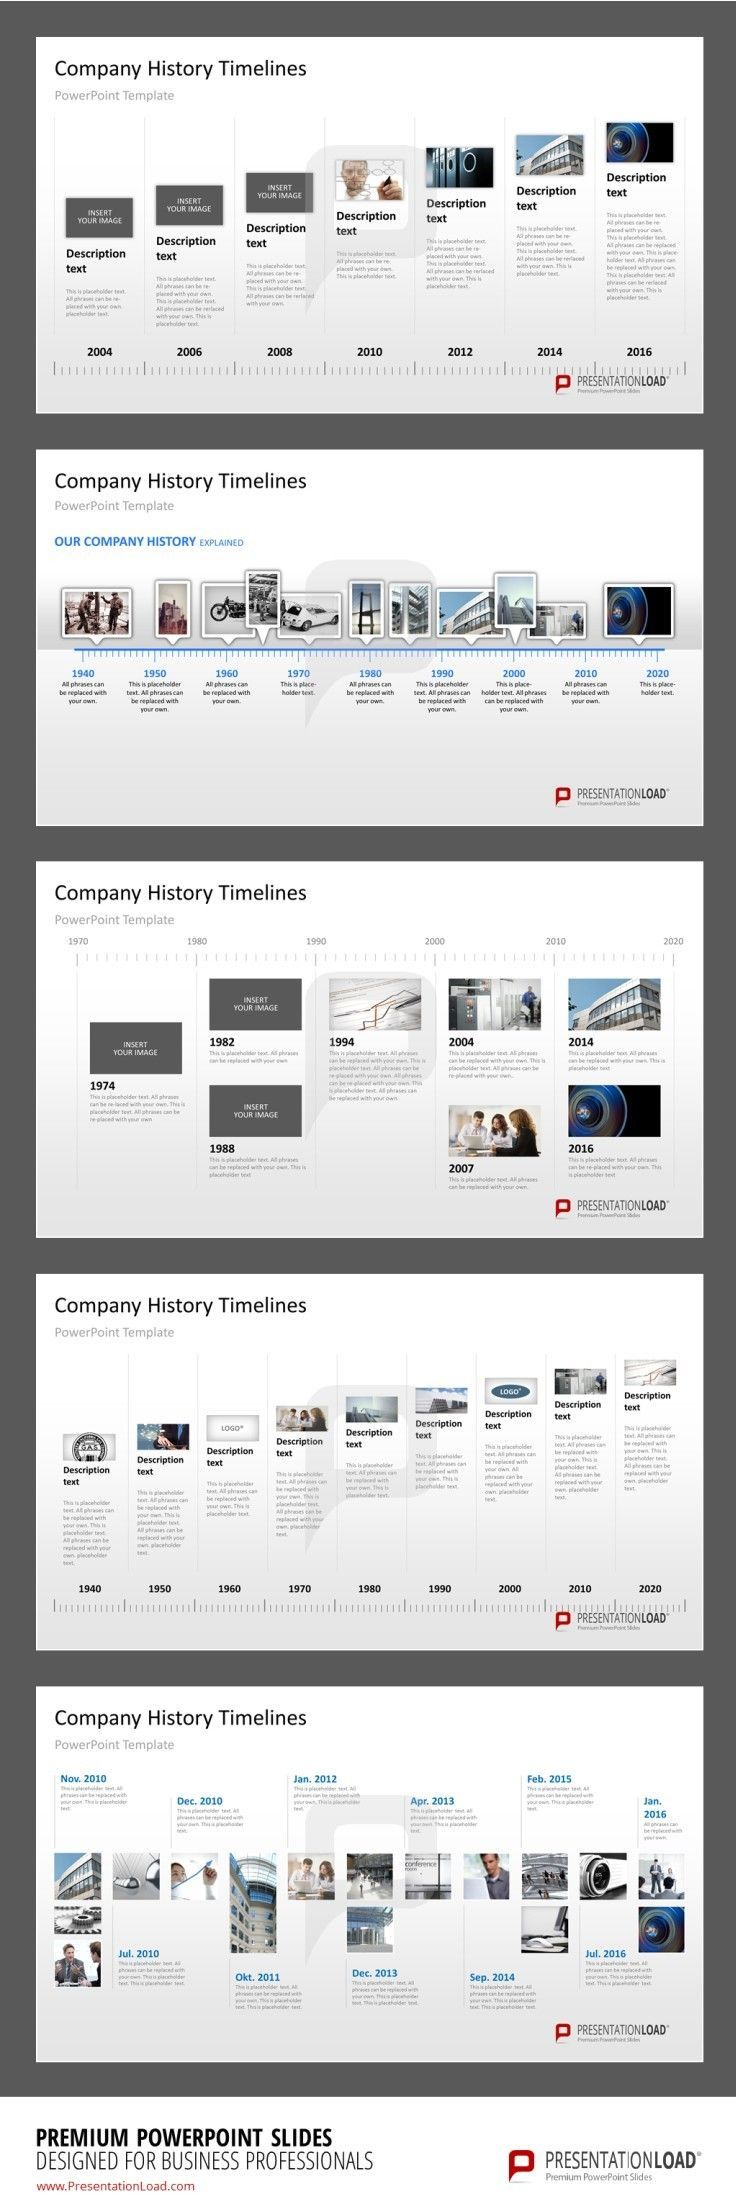 Company History Milestones in a Timeline PowerPoint Template  #presentationload…